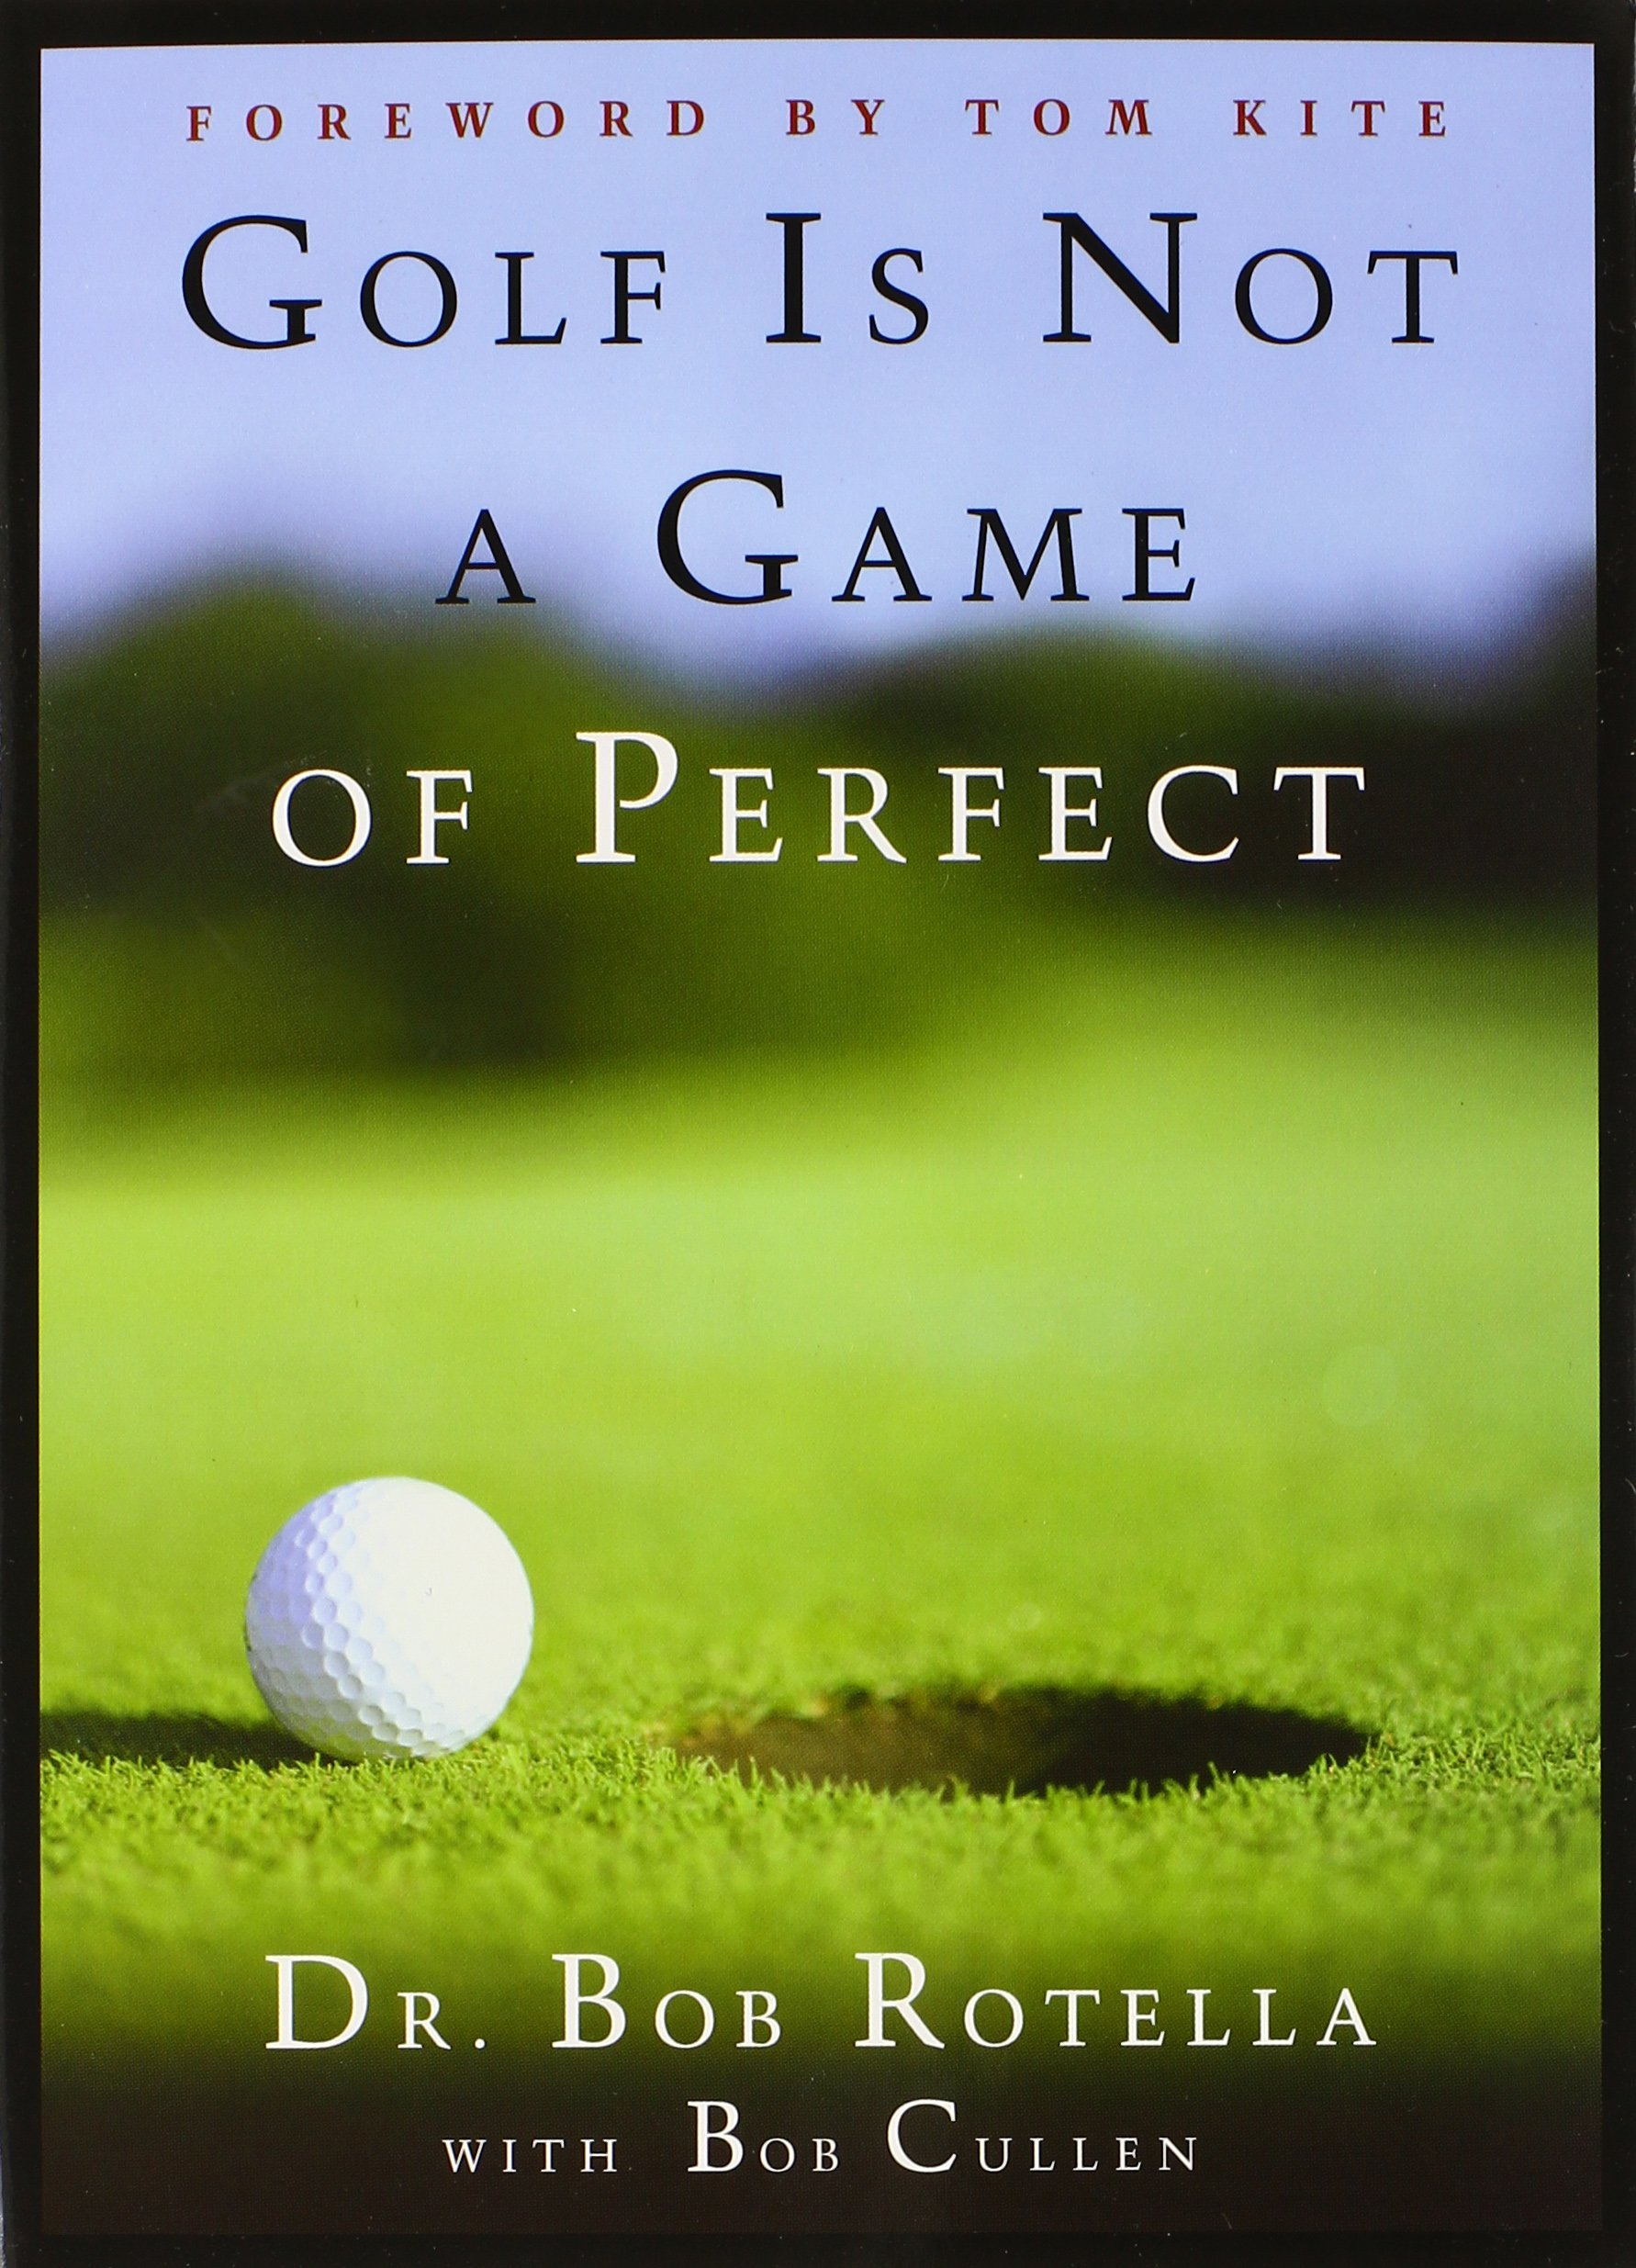 What are your top book recommendations for golf instruction?